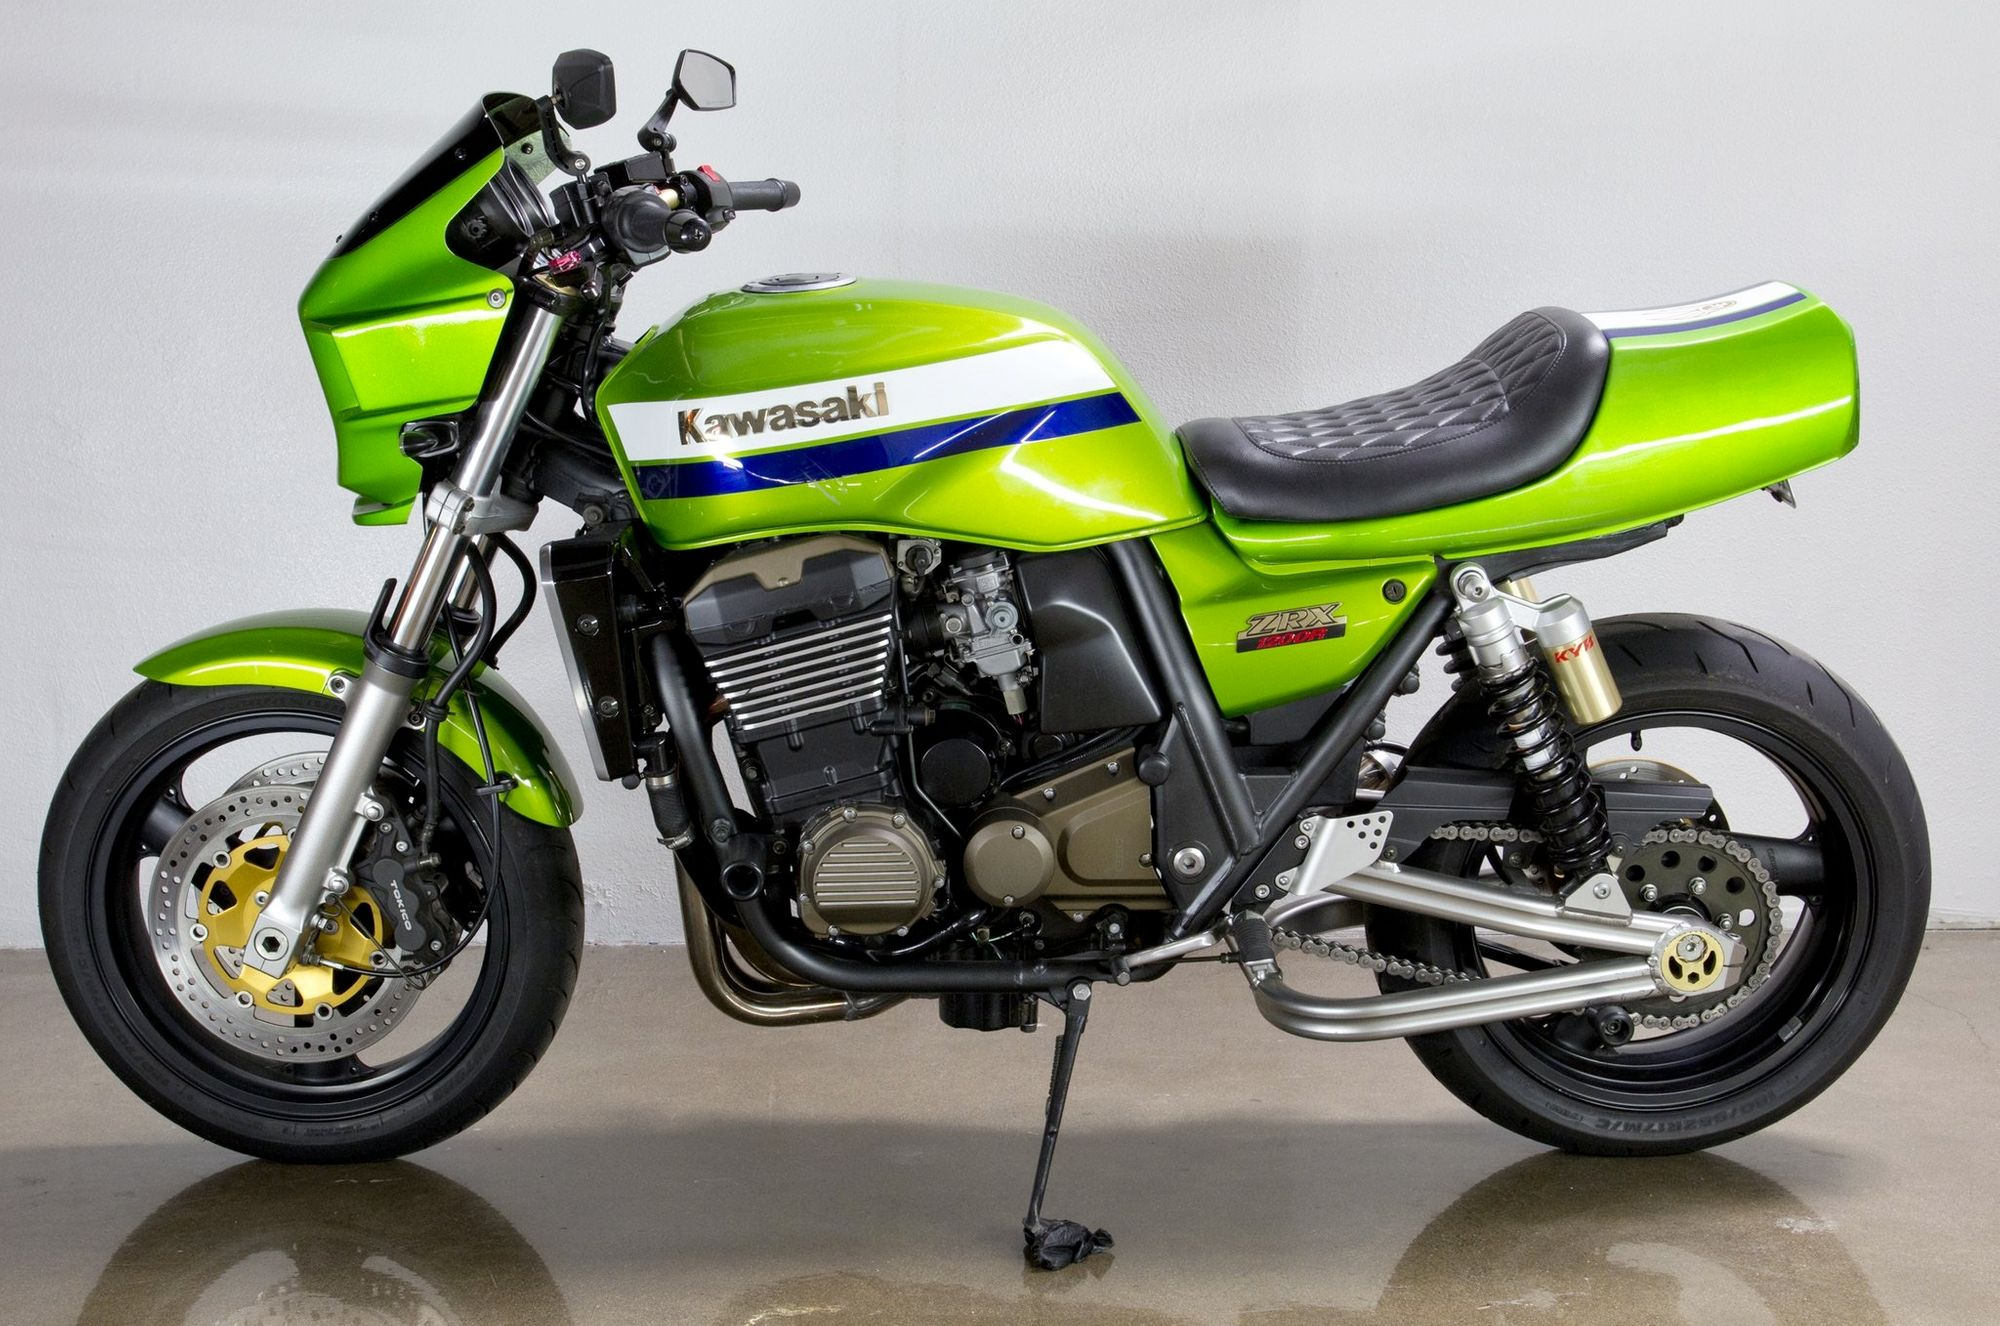 The Kawasaki ZRX1200R Green - Eddie Lawson Replica